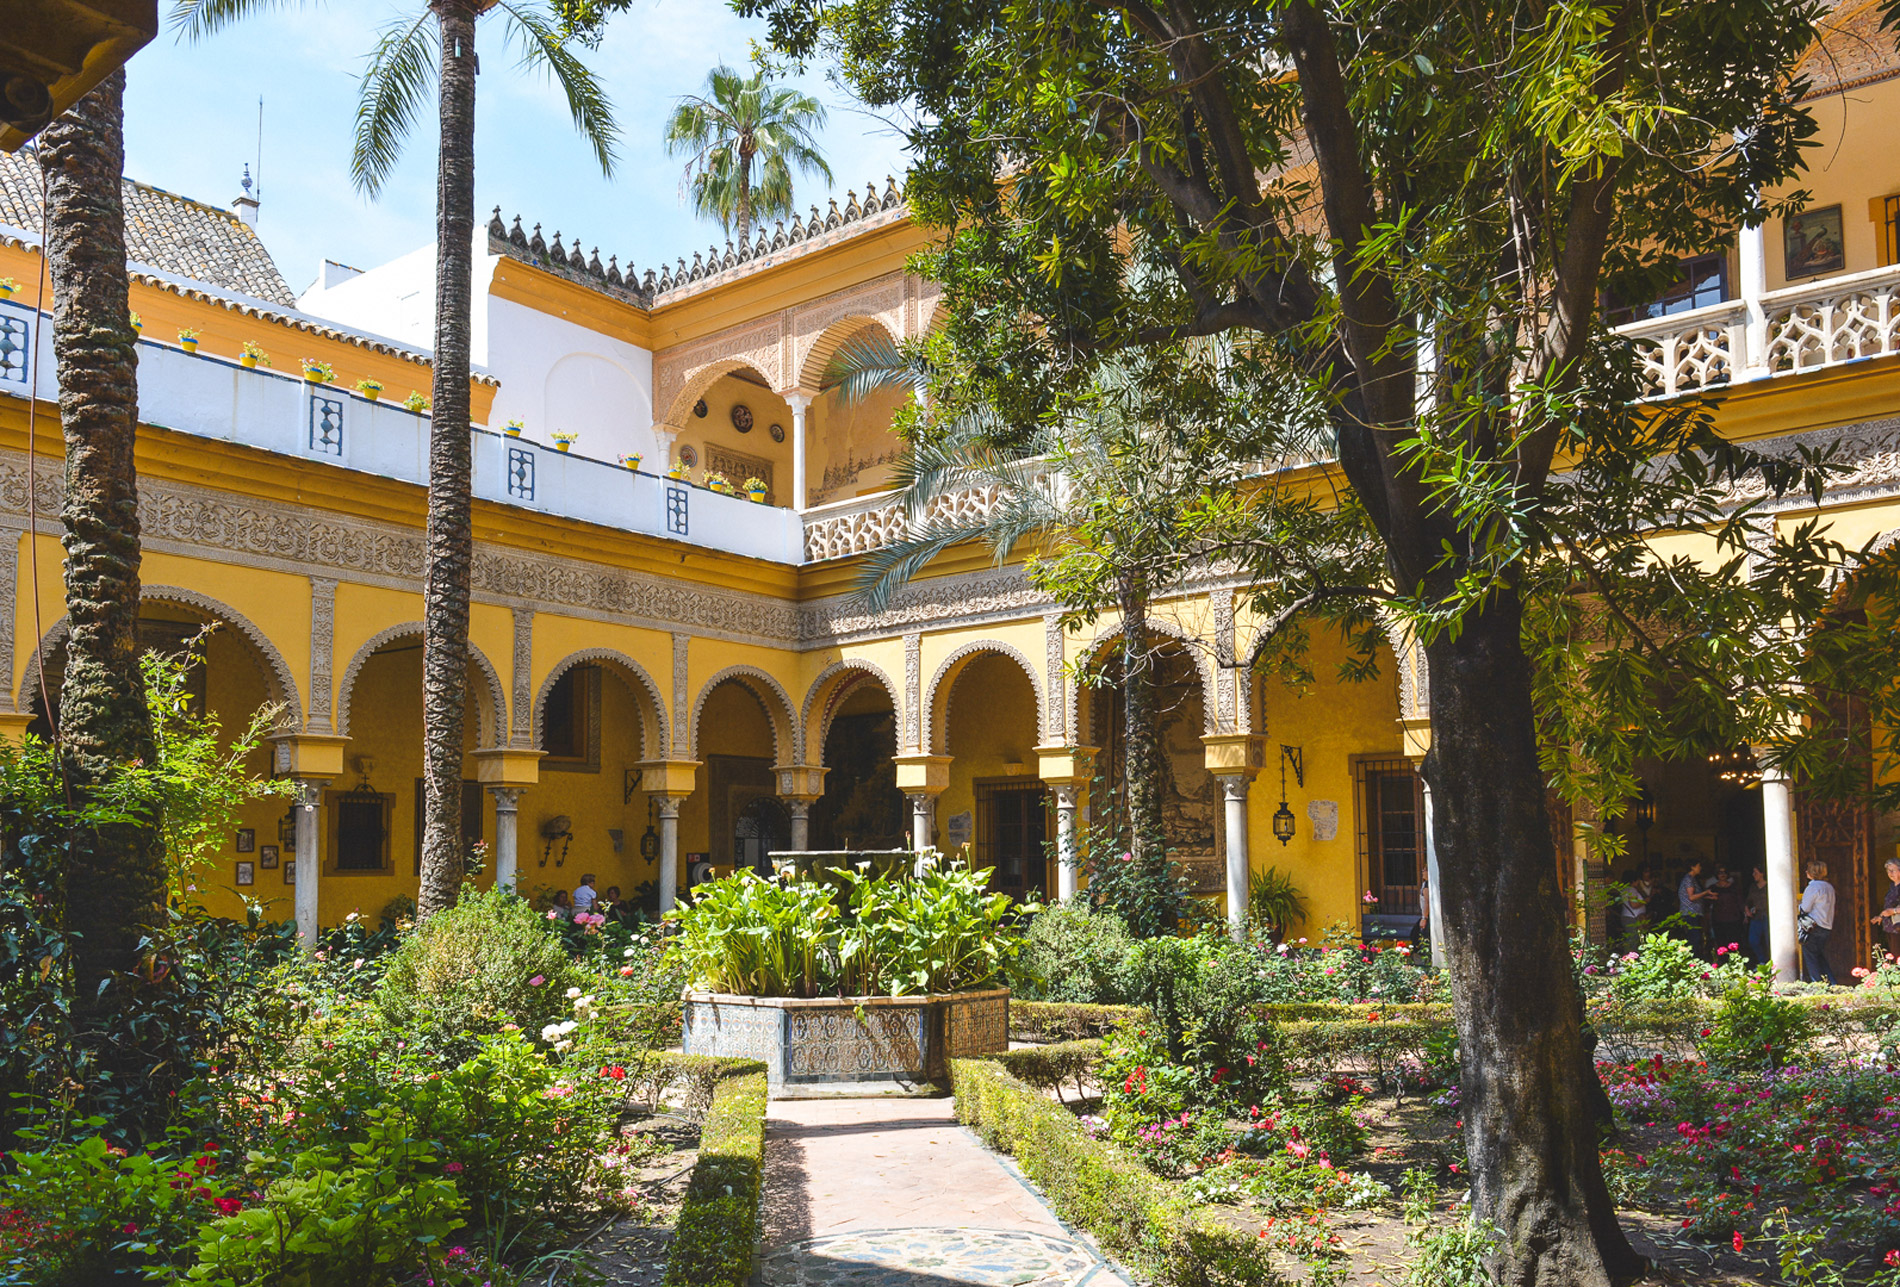 The Palacio de las Duenas is one of the most beautiful Seville attractions